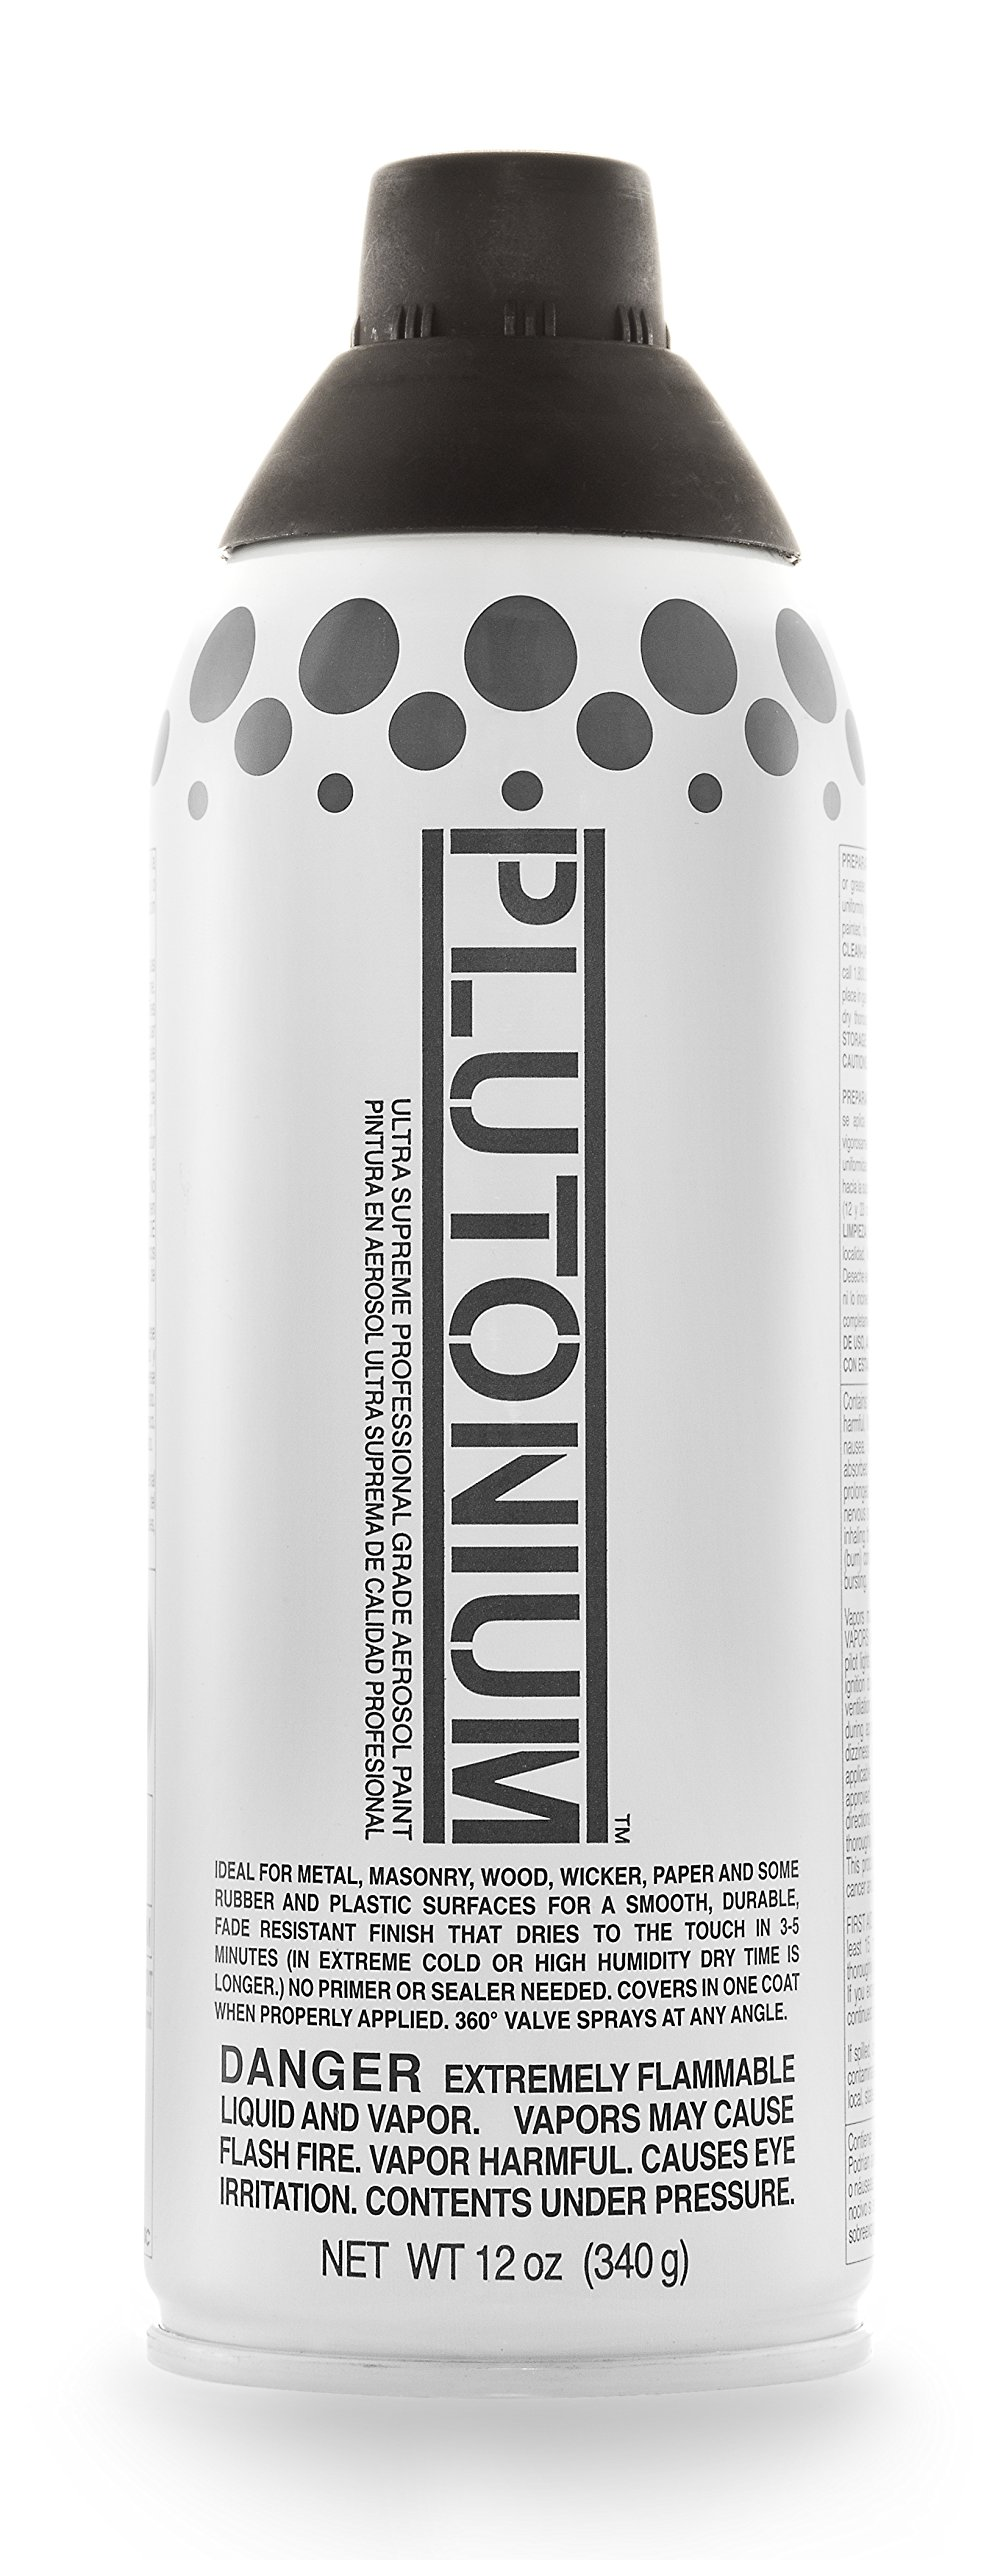 Plutonium Paint Ultra Supreme Professional Aerosol Paint, 12-Ounce, Deep Space